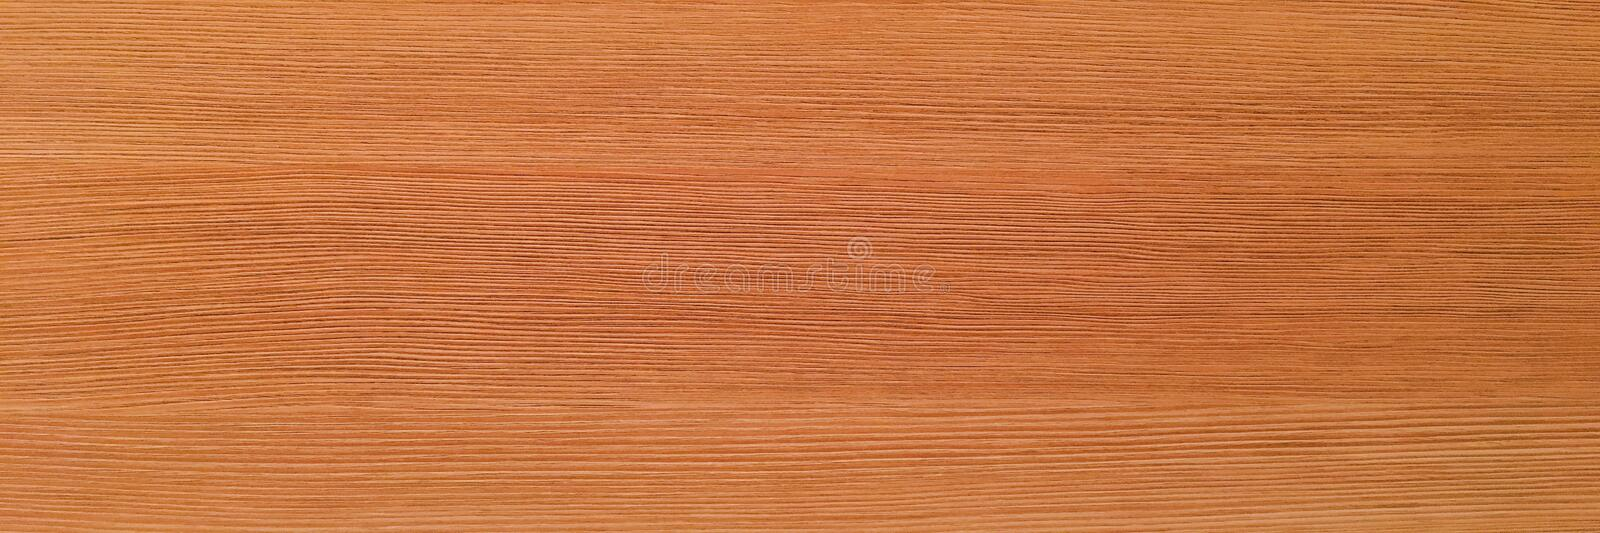 Wood, brown texture. surface of dark wood background for design and decoration stock photography